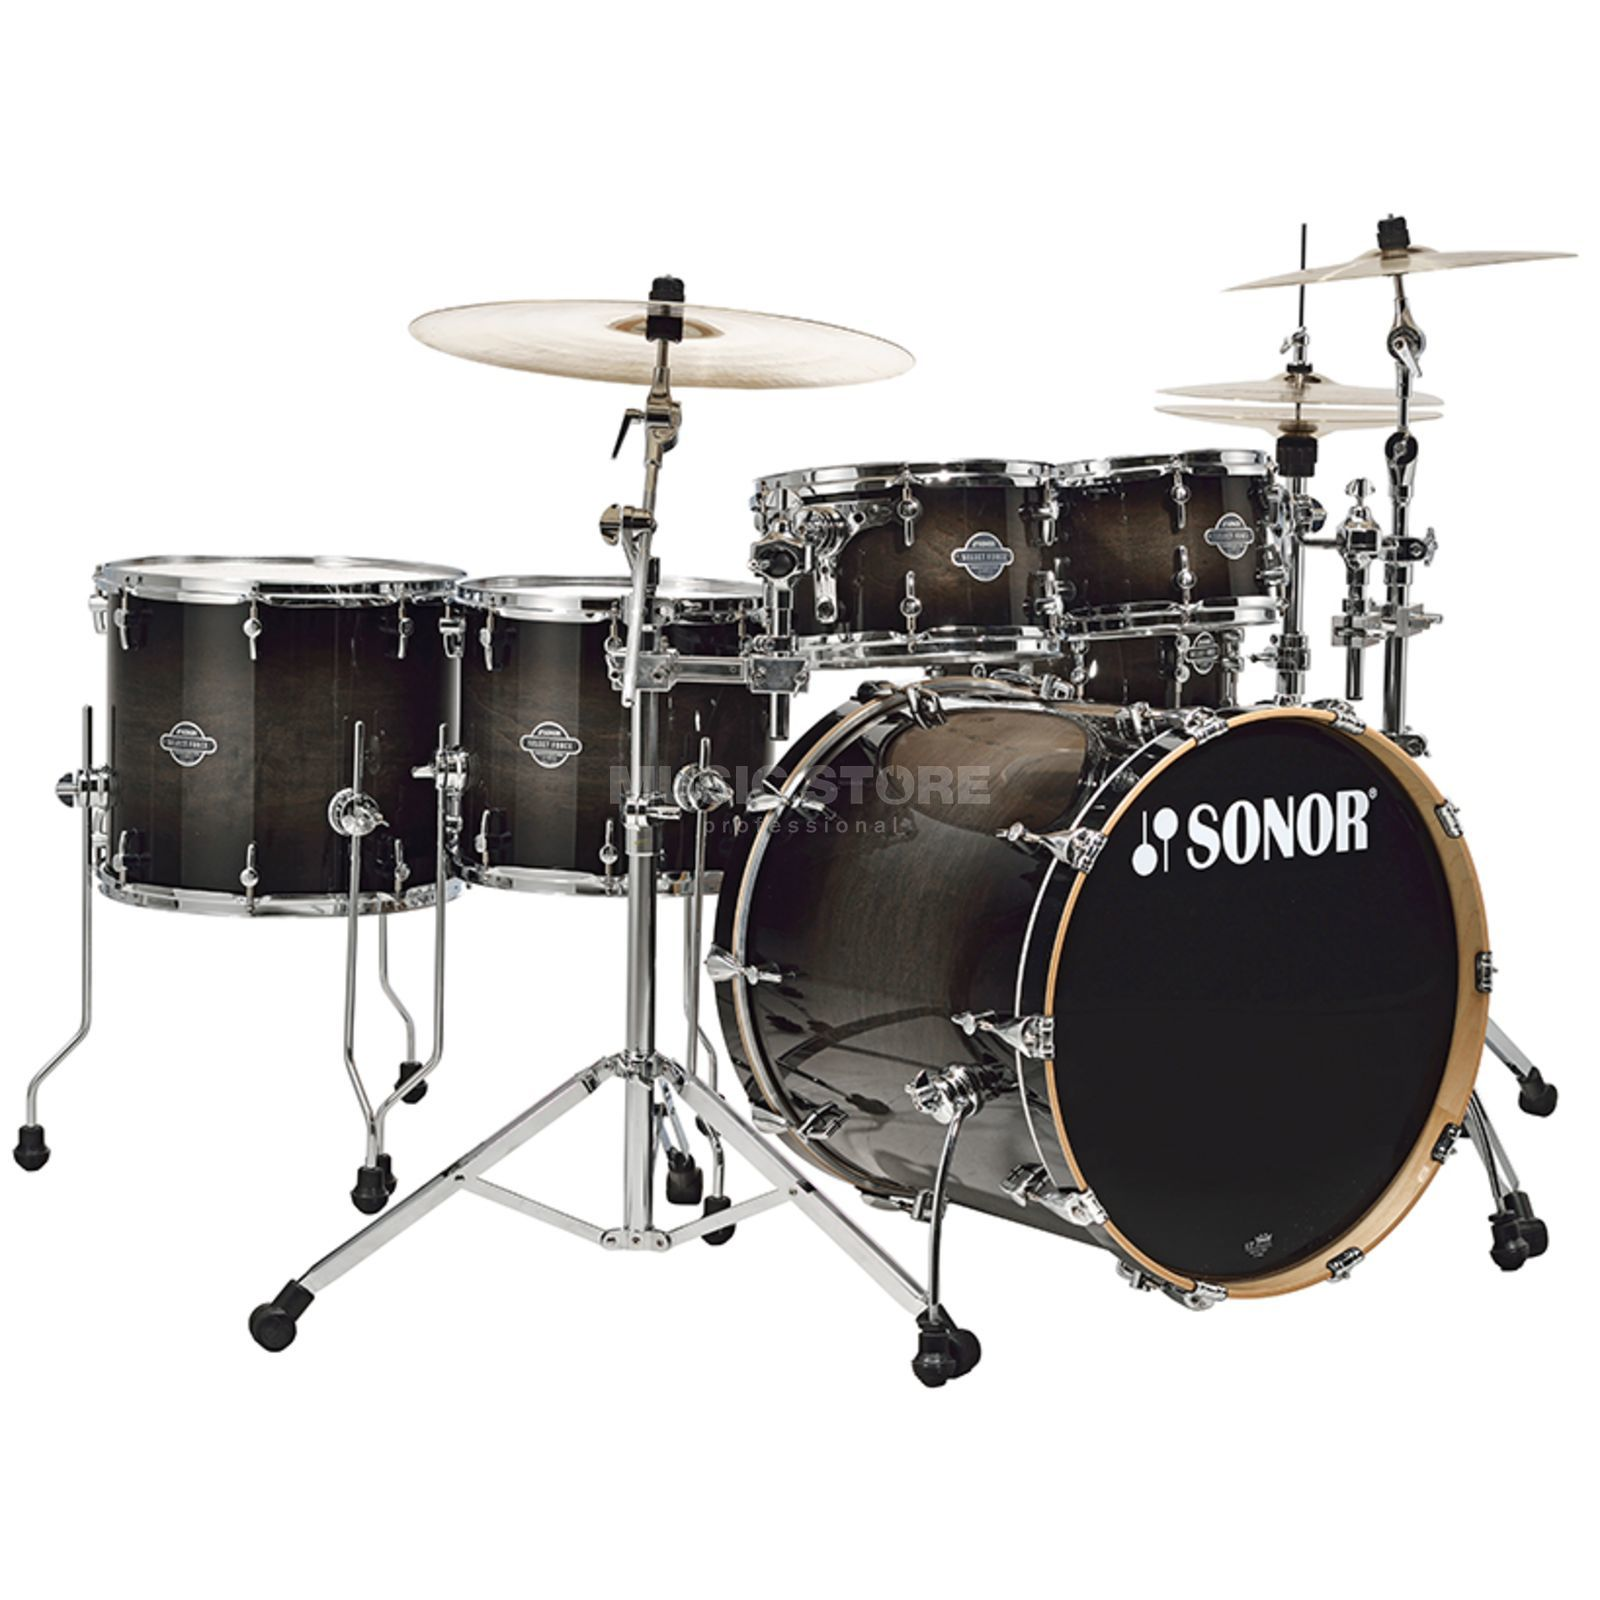 Sonor Select Force Stage 3, Transparent Black Burst #65 Produktbillede